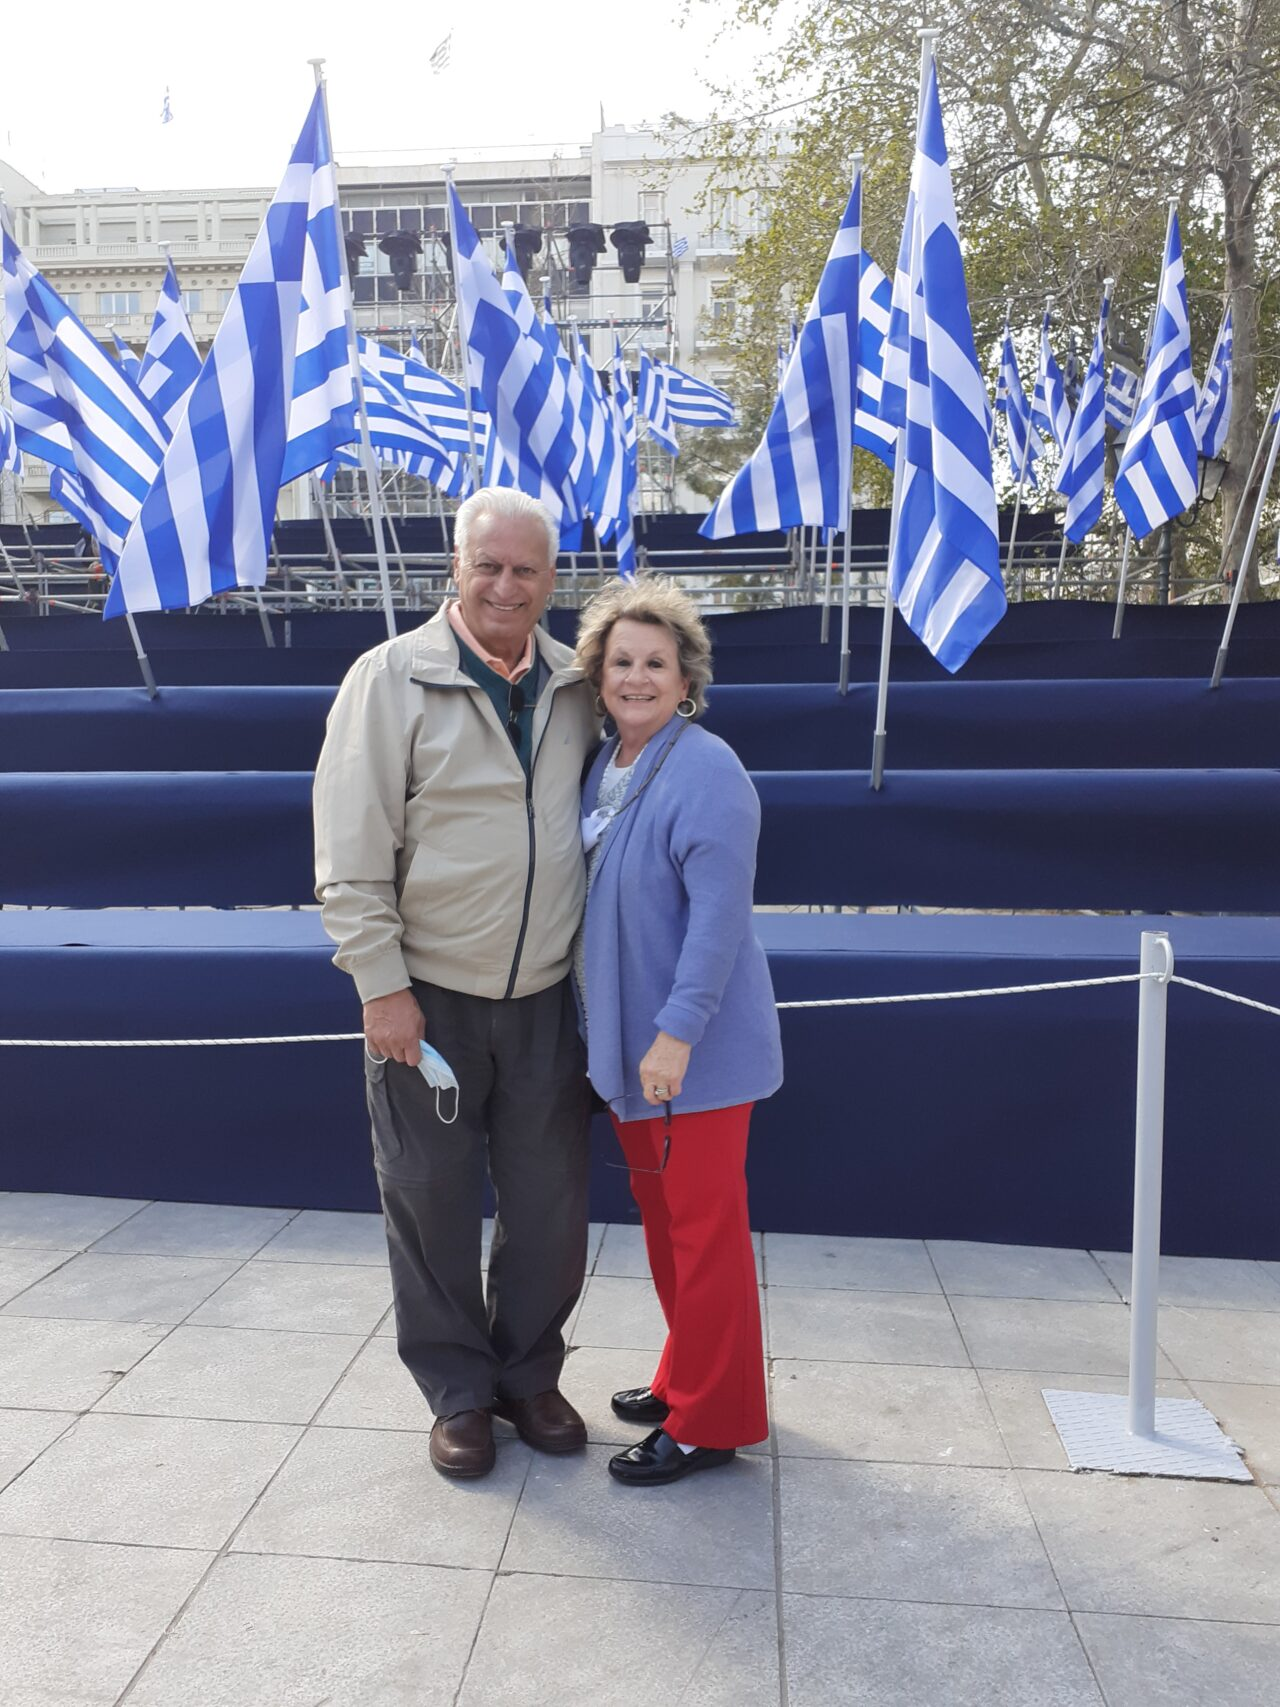 Greece on Indpendence Day